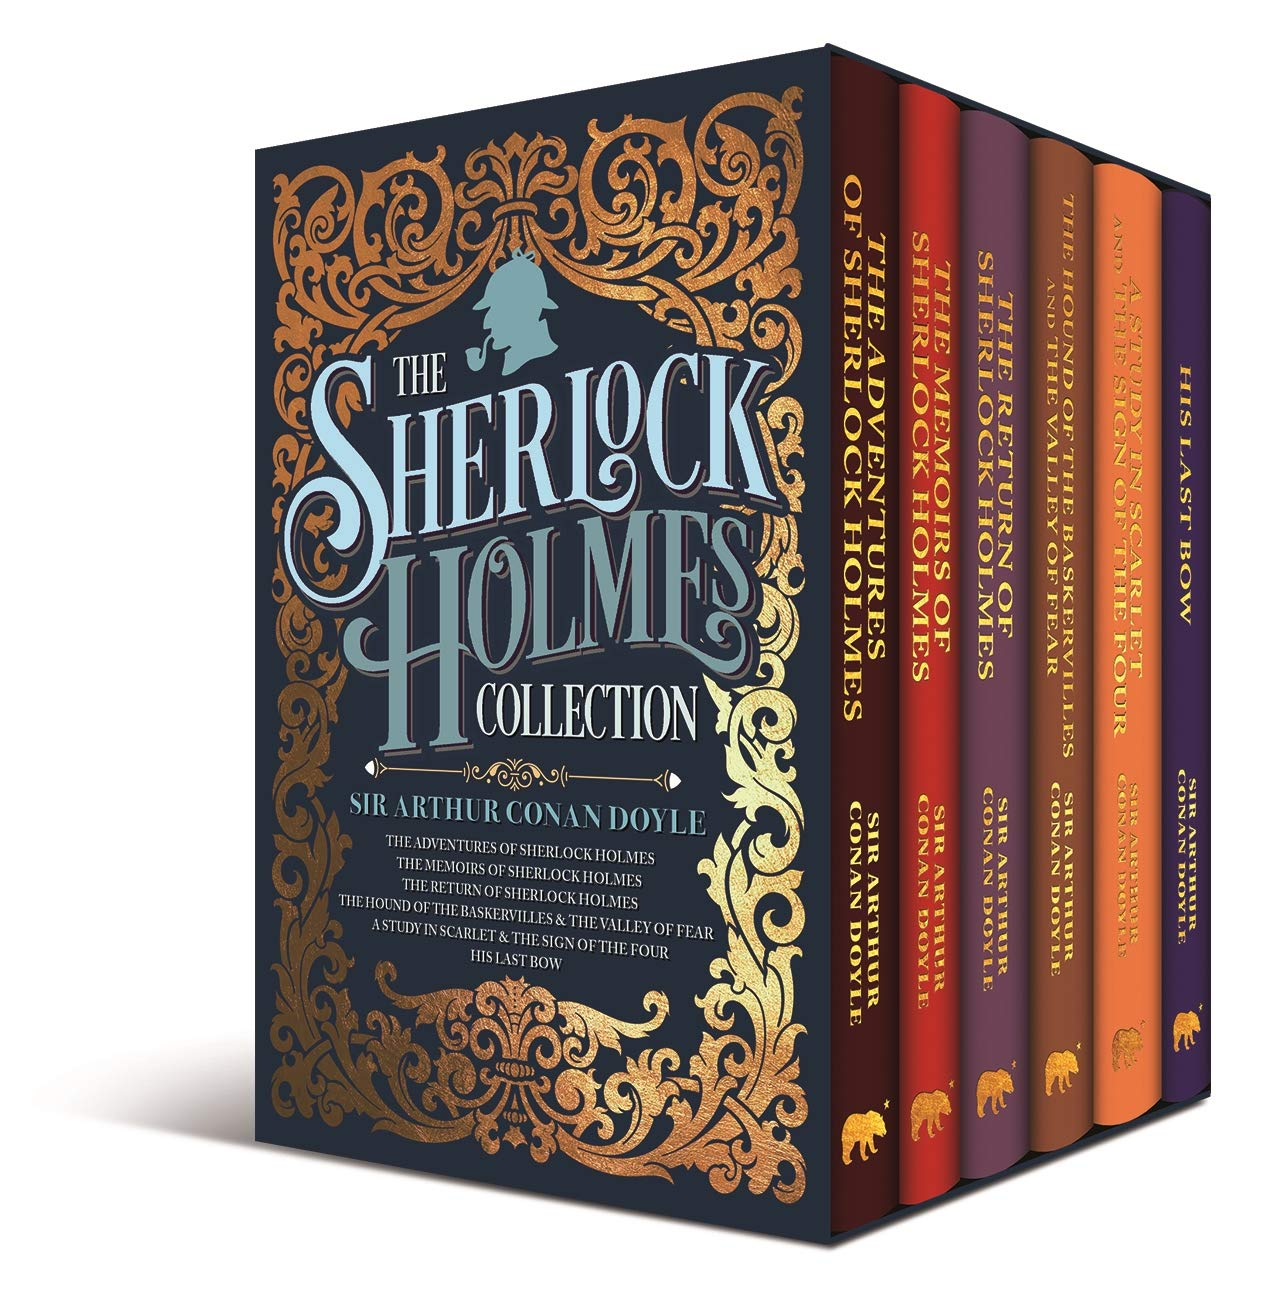 The Sherlock Holmes Collection by Sir Arthur Conan Doyle